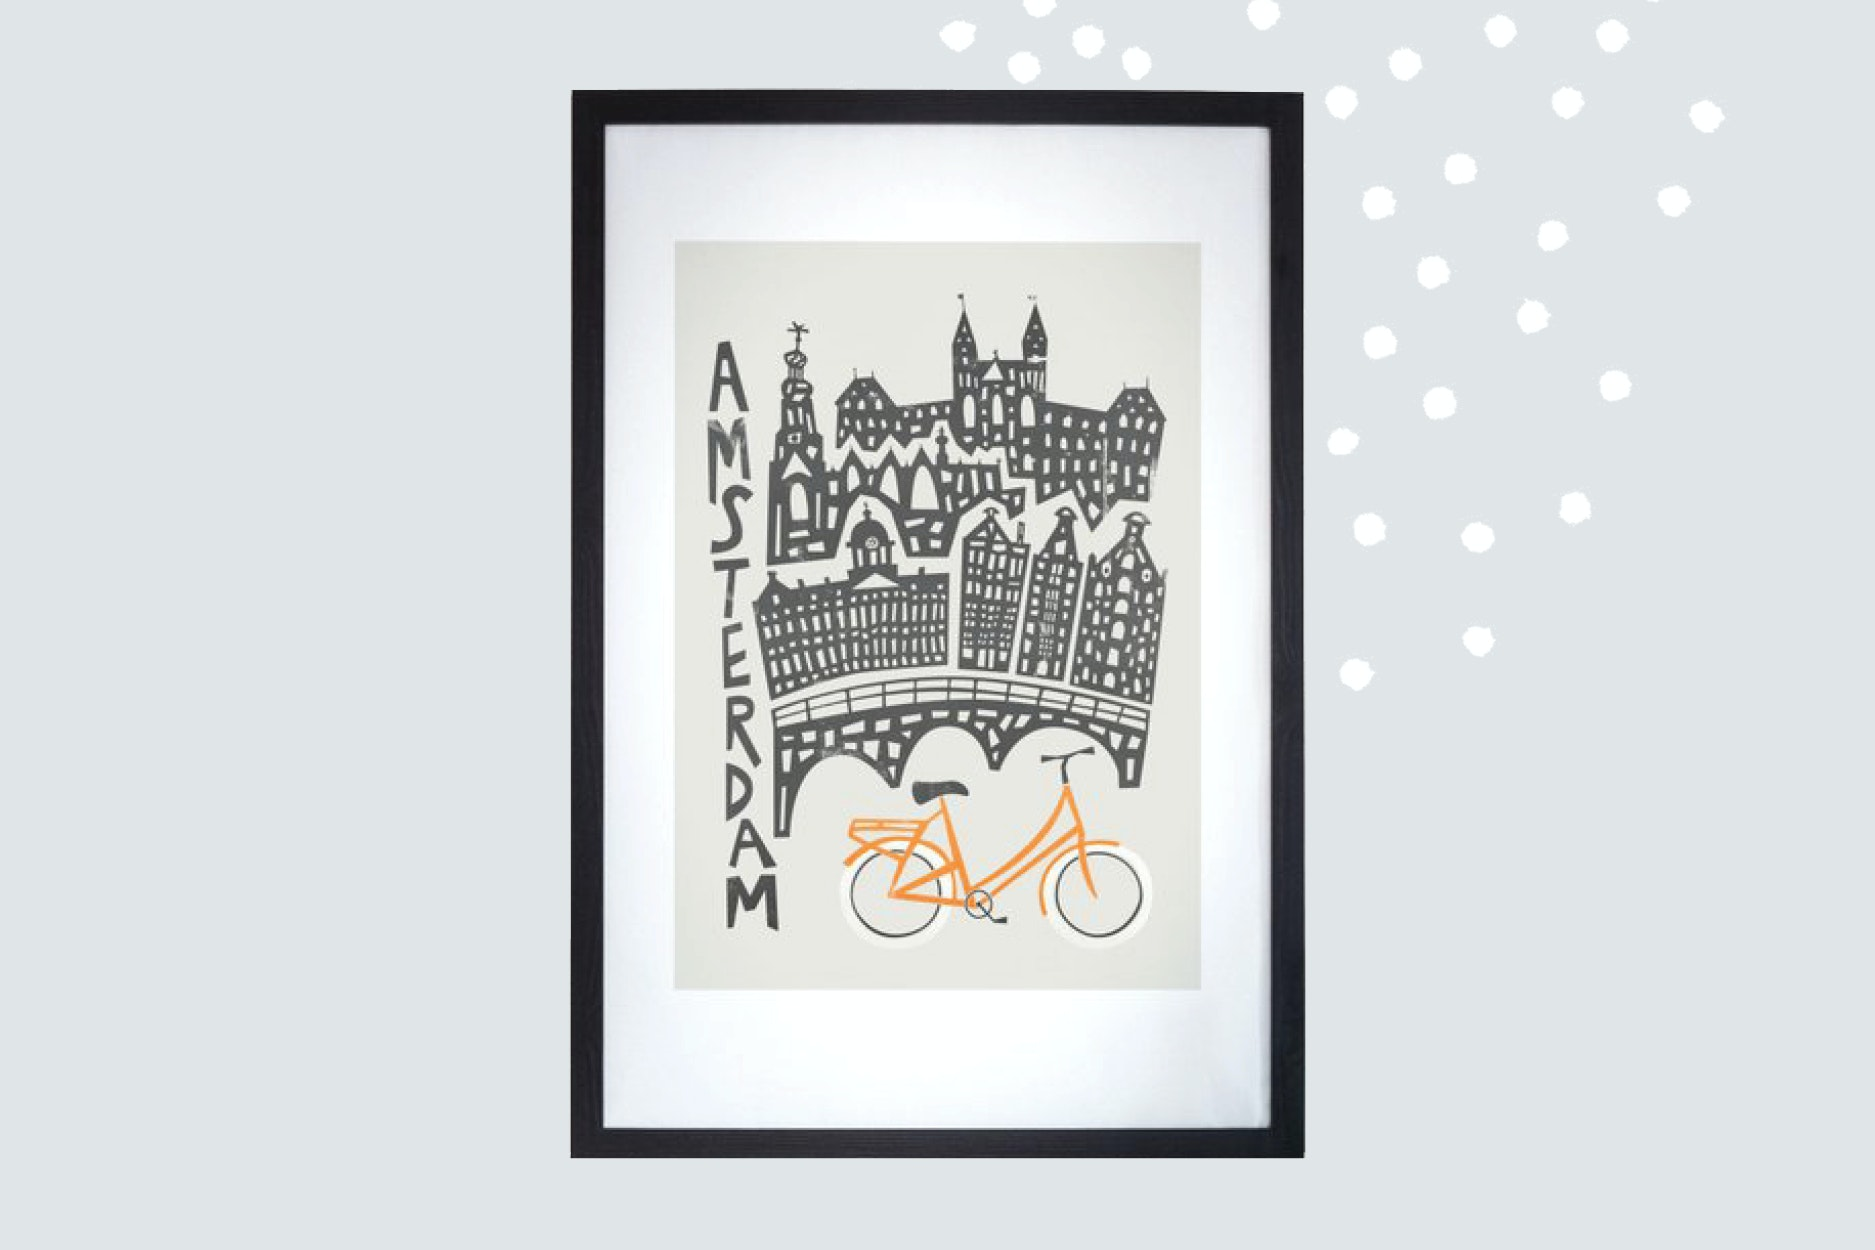 Decorate the walls with a favorite city design.